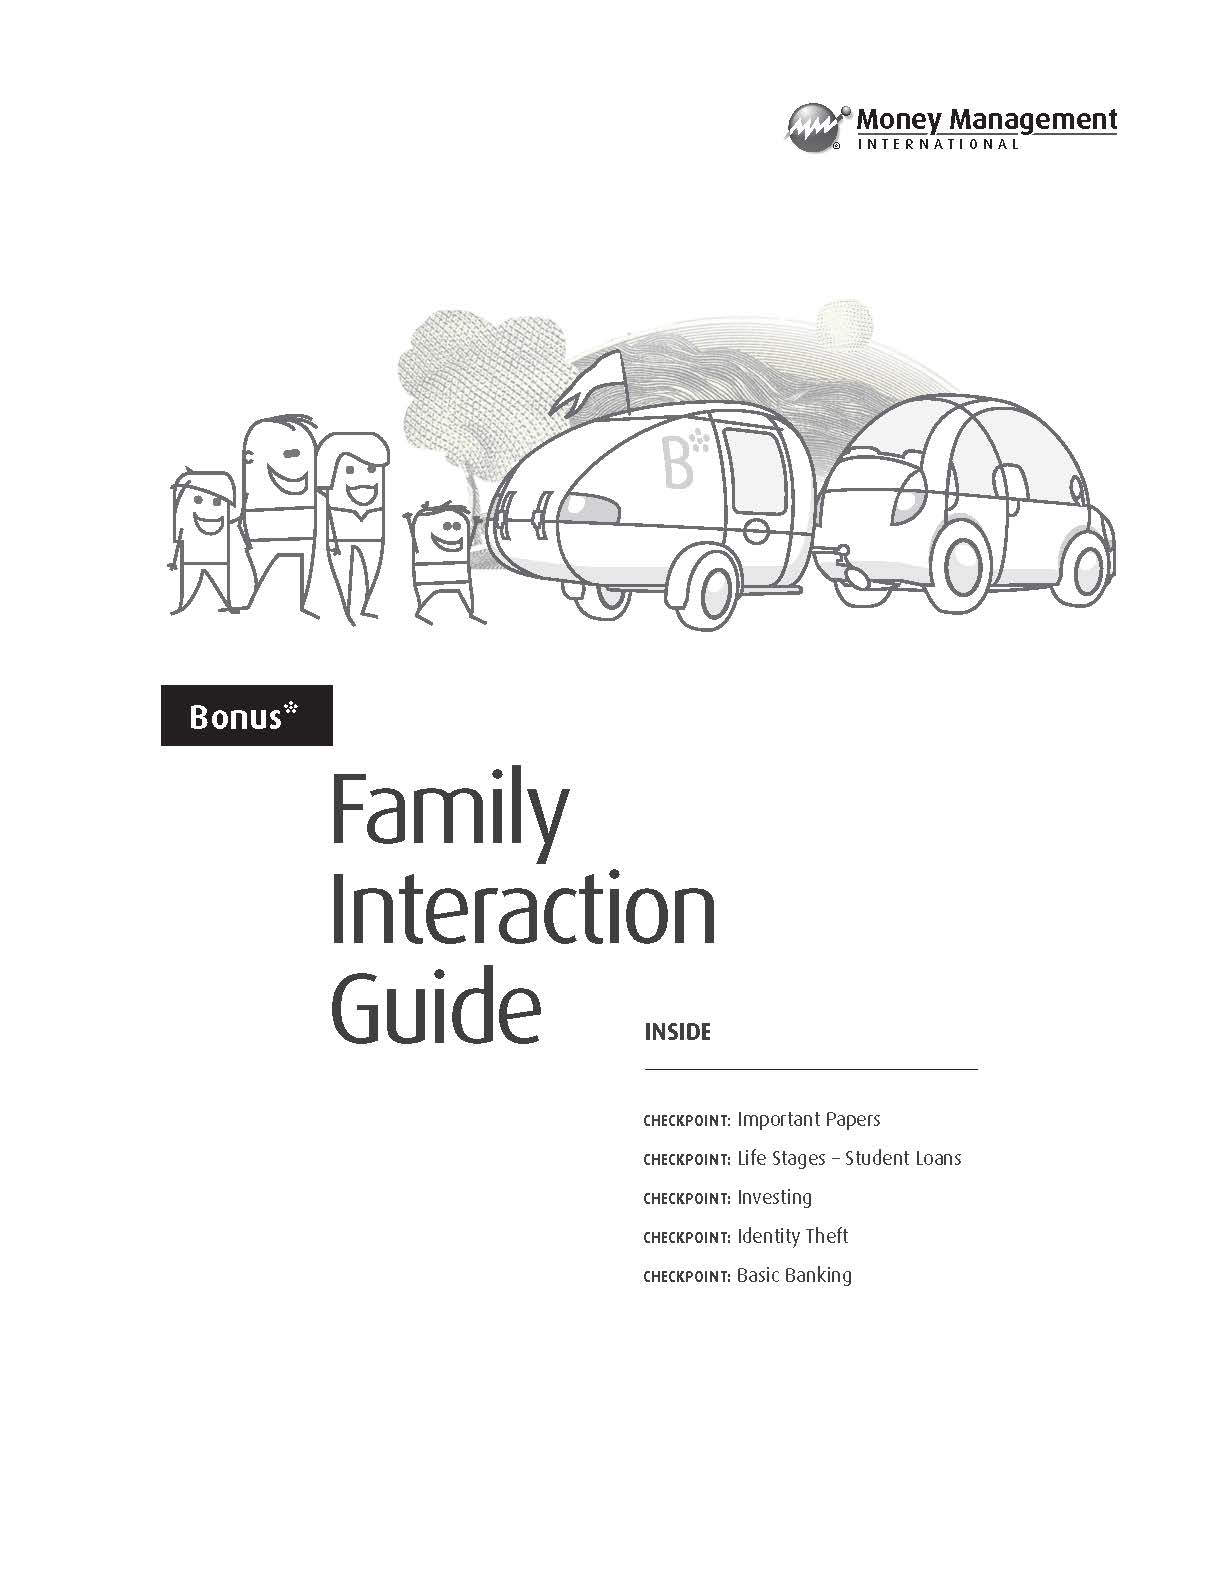 Family Interaction Guide — financial literacy guide